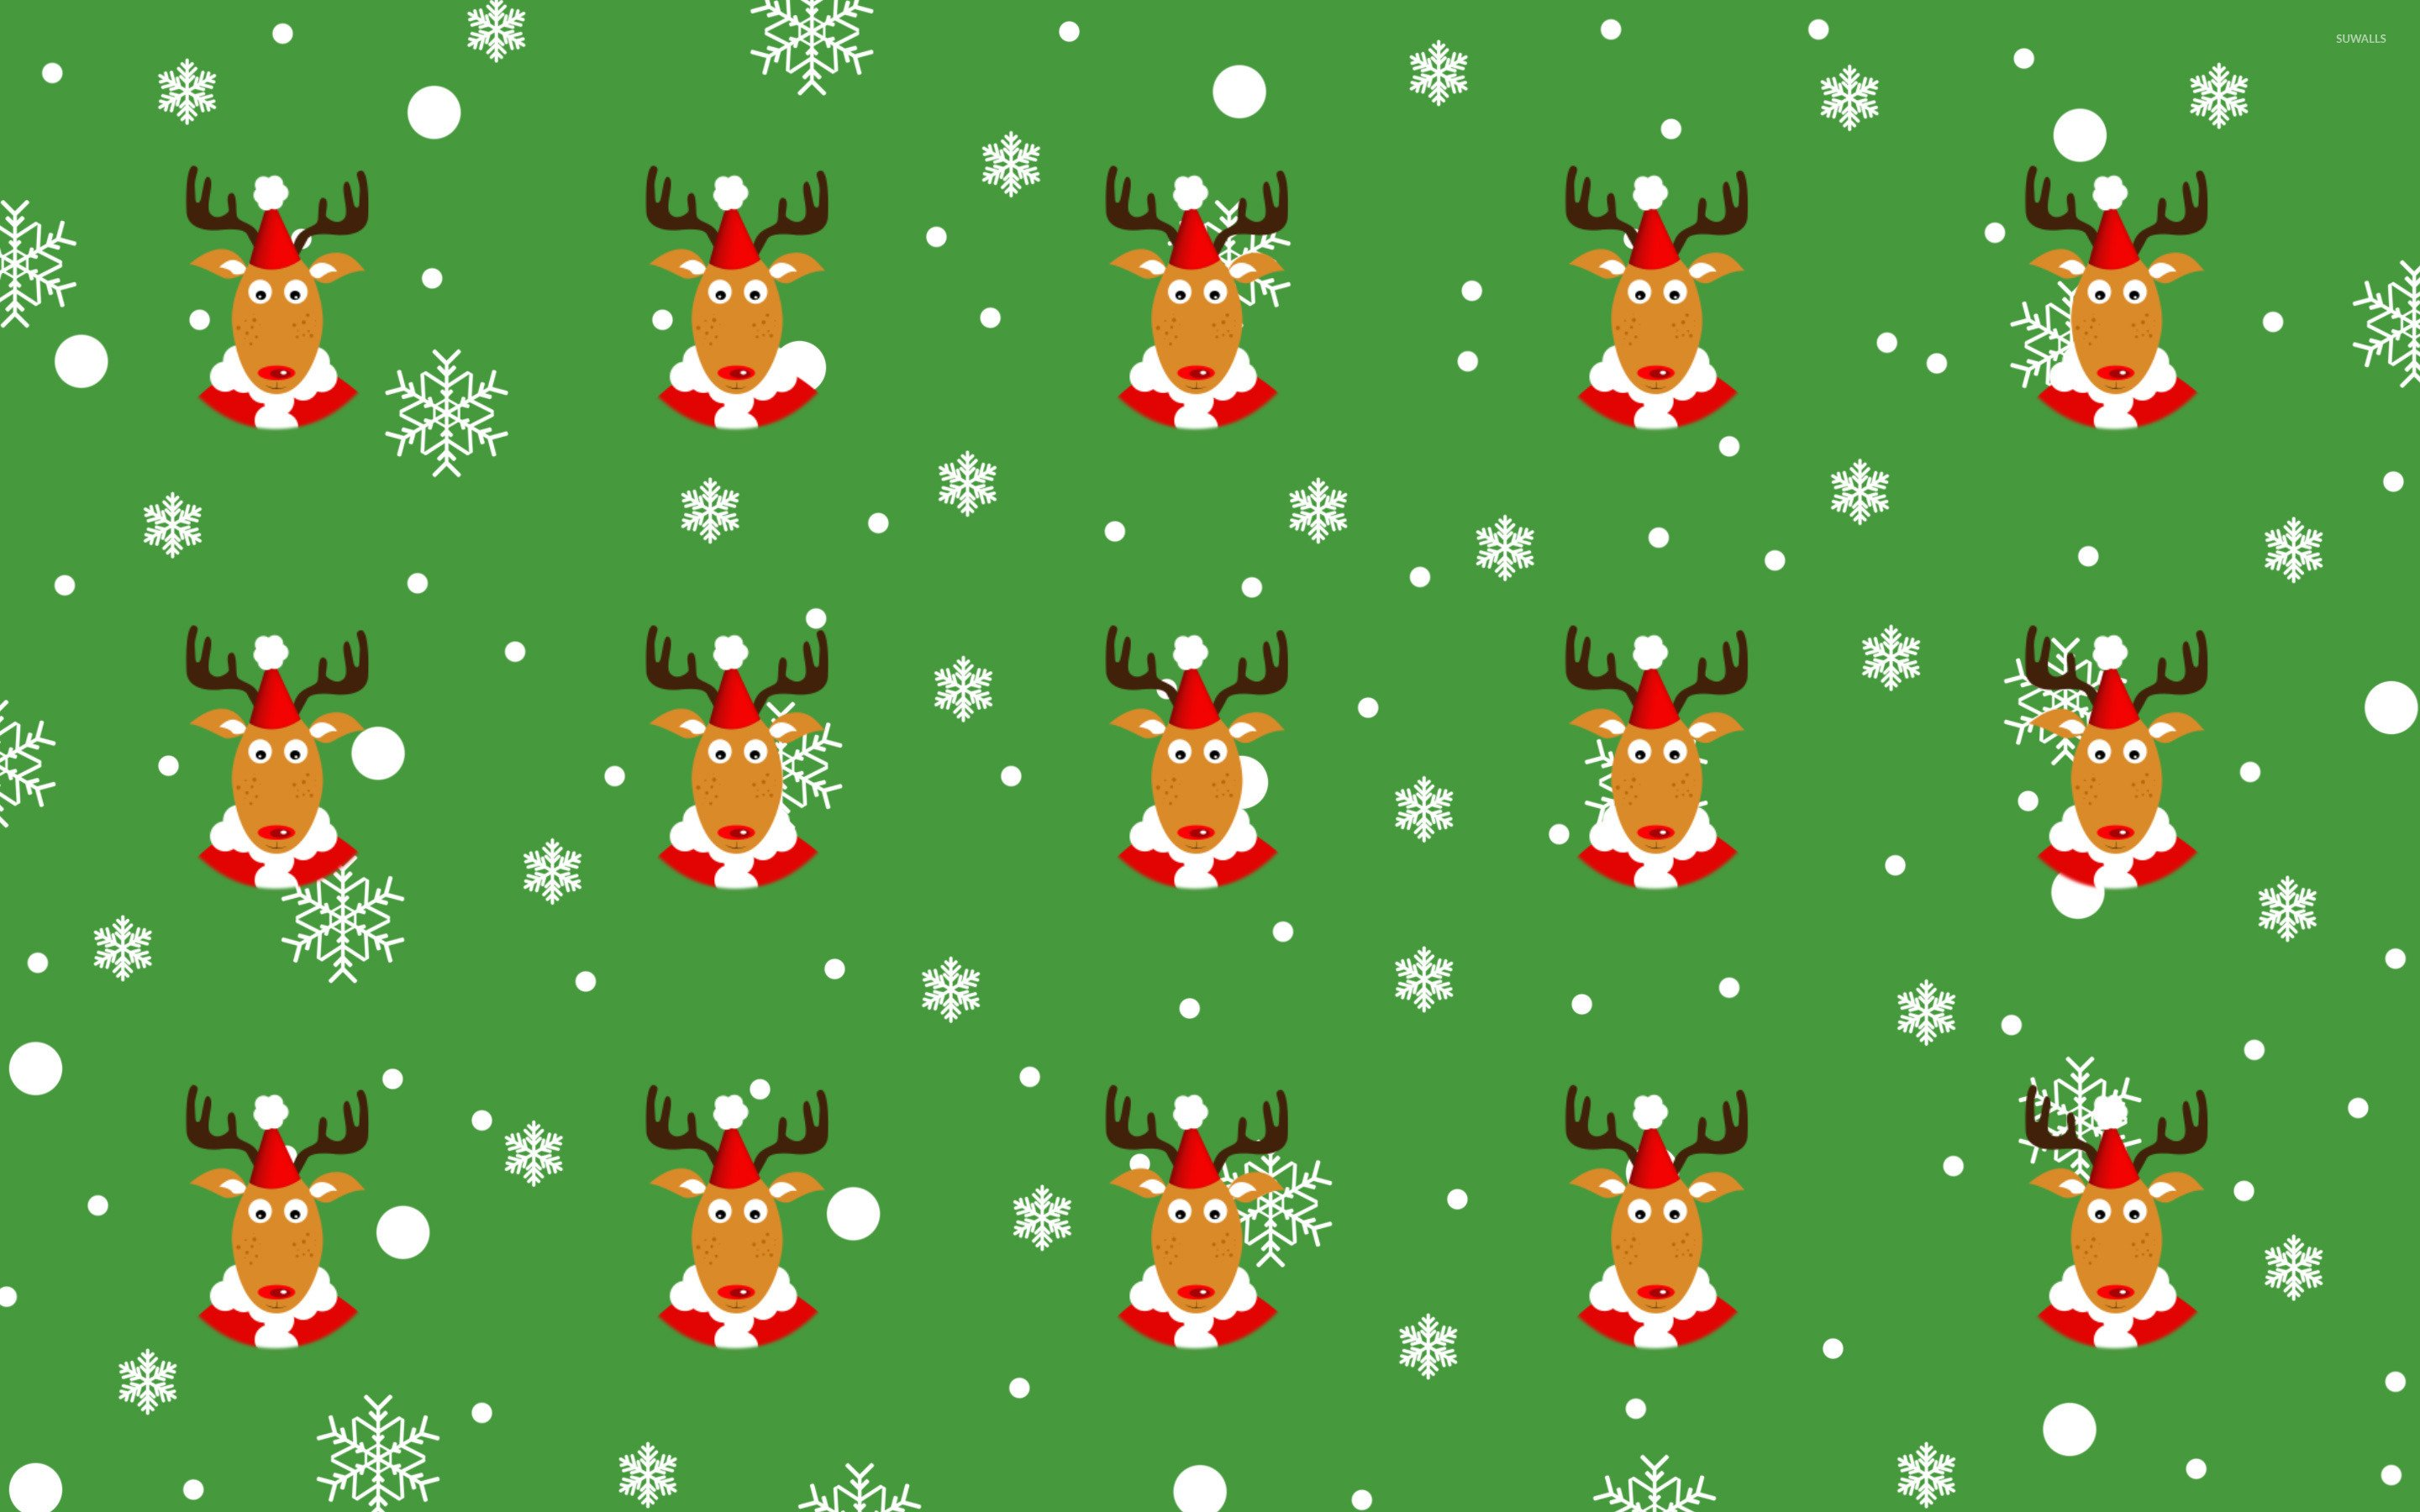 Reindeer pattern wallpaper   Holiday wallpapers   25547 2880x1800